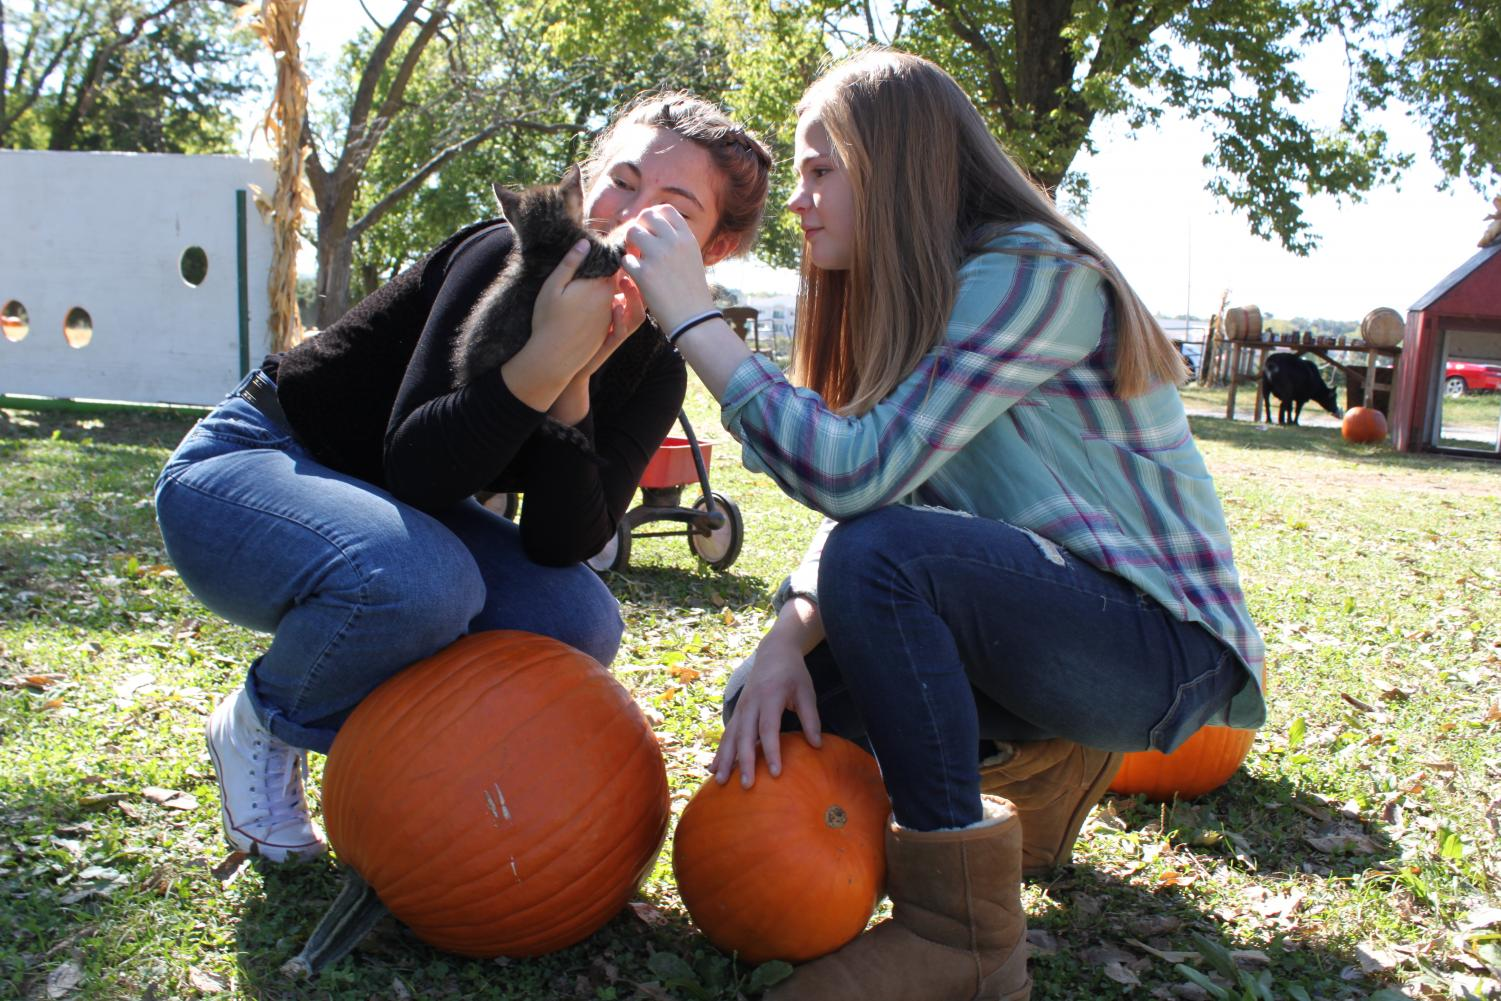 Freshmen Marygrace Cummings and Emma Schultheis look intently at a kitten at a local pumpkin patch. Pumpkin patches are a great way to get together with your friends and have some fun while celebrating the spirit of the season.